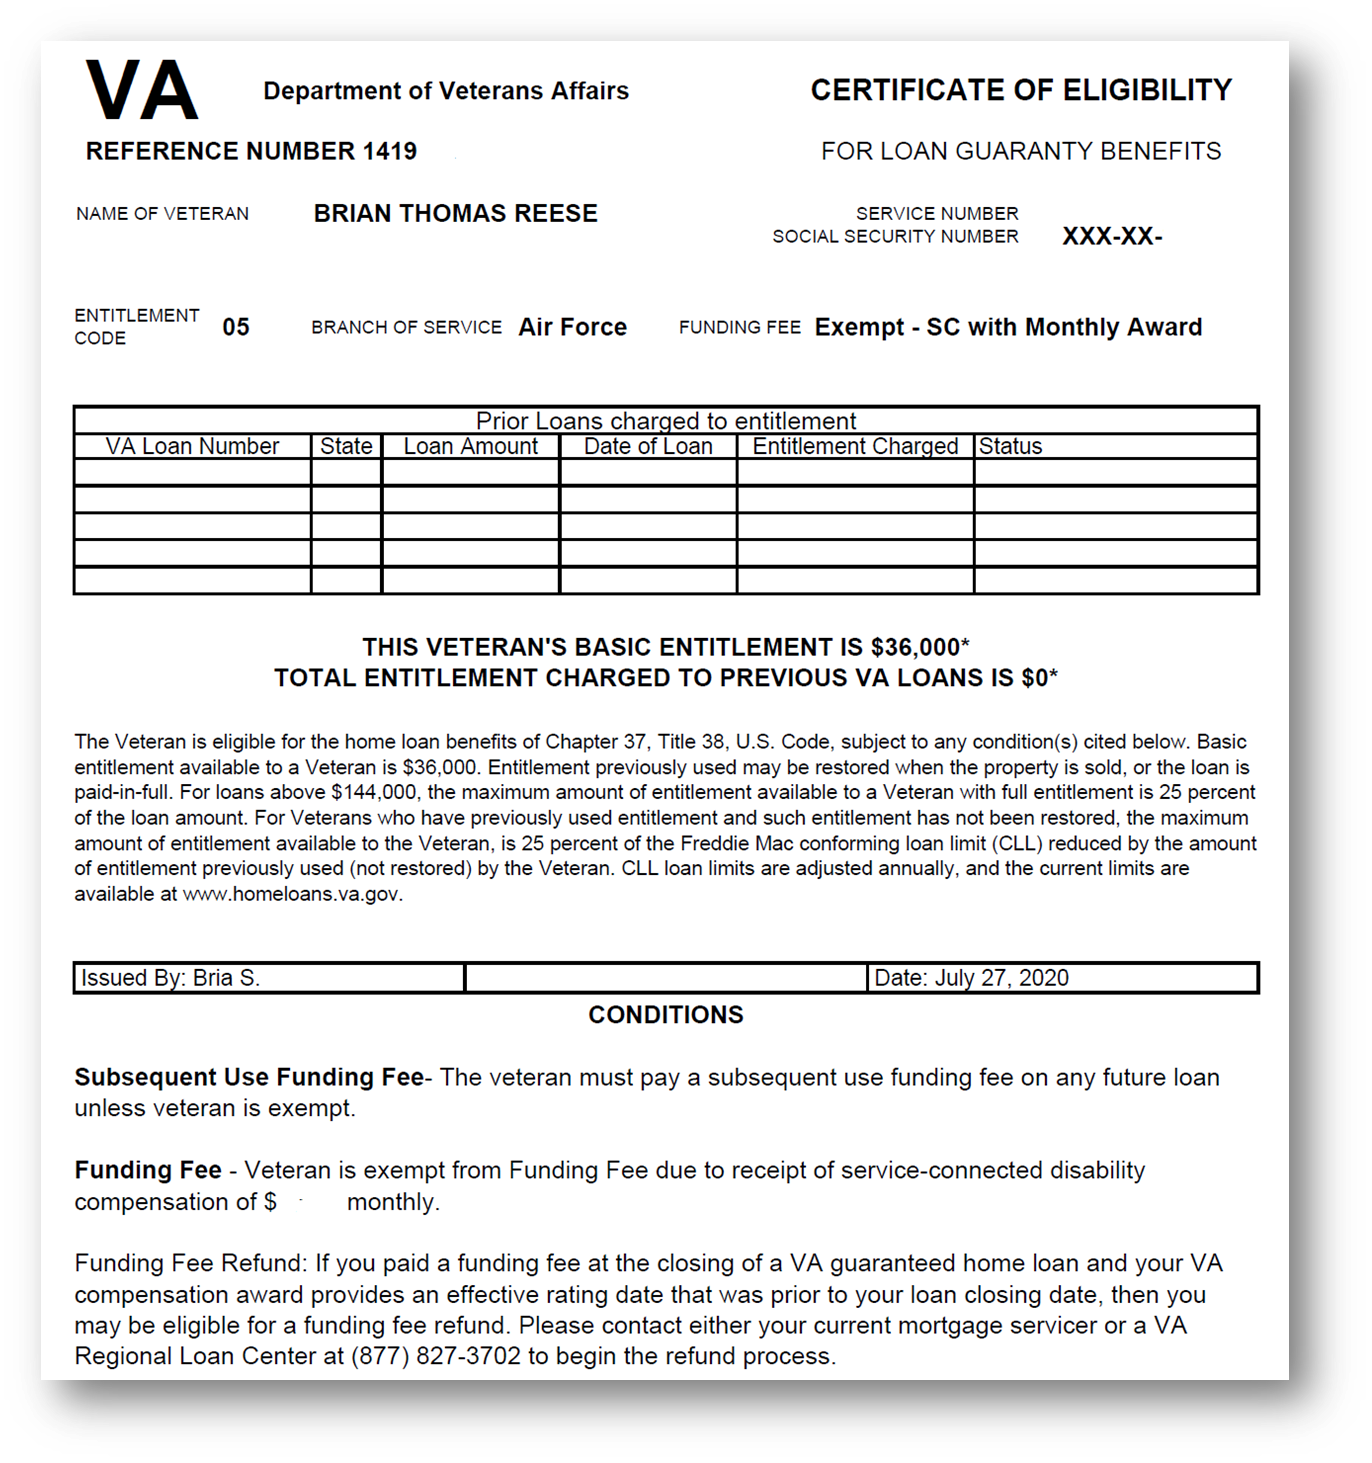 Top 3 Ways To Get Your Va Home Loan Certificate Of Eligibility Online In 2021 New Tutorial Va Claims Insider